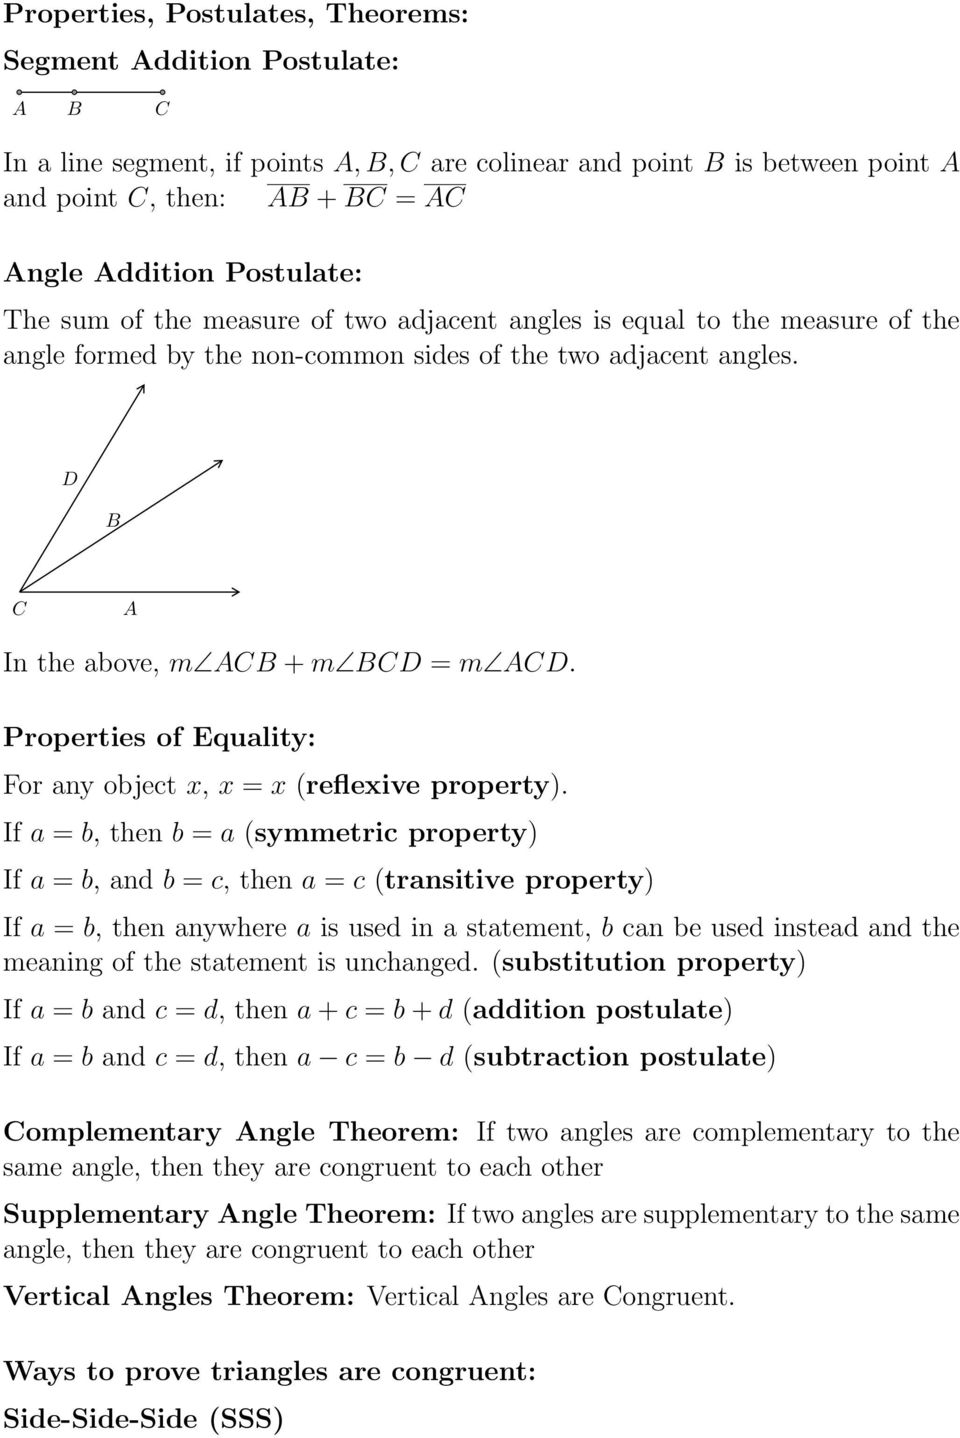 Properties of Equality: For any object x, x = x (reflexive property).